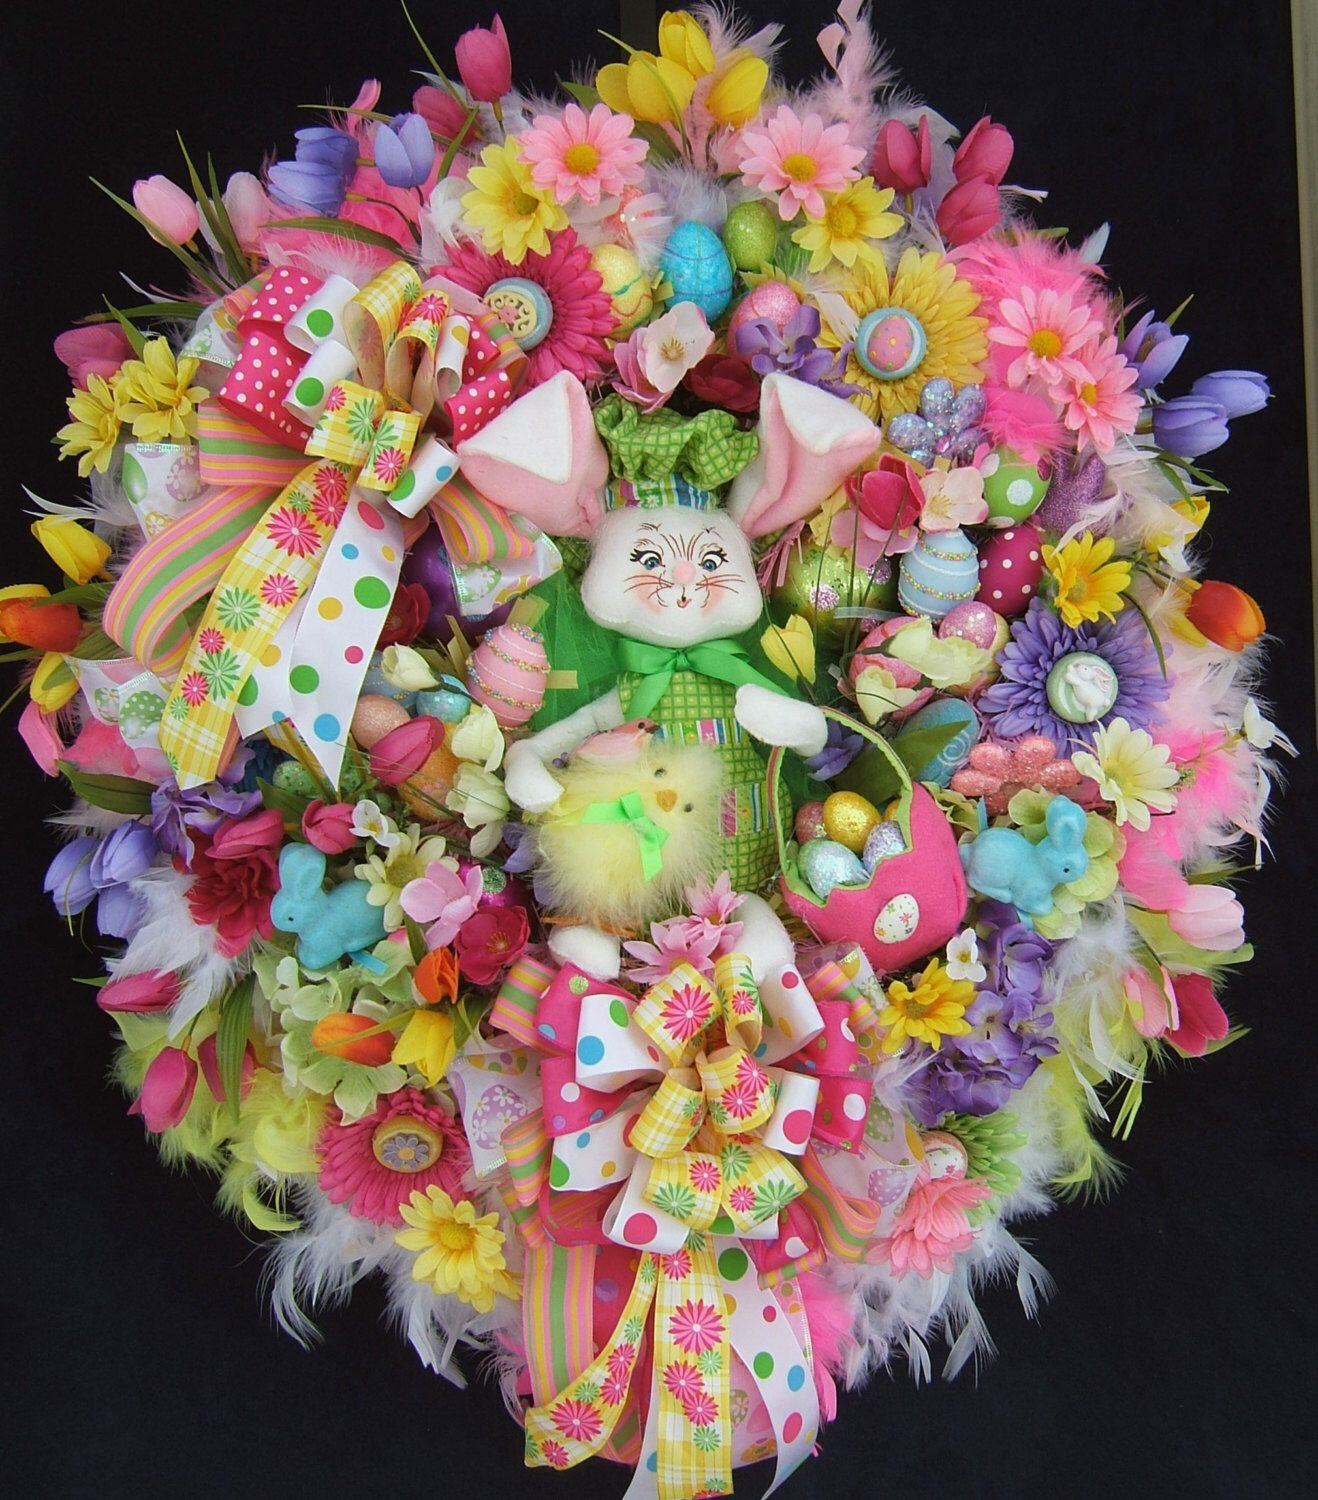 XXL Easter wreath, Spring wreath, Door wreath, Annalee bunny, chick ...